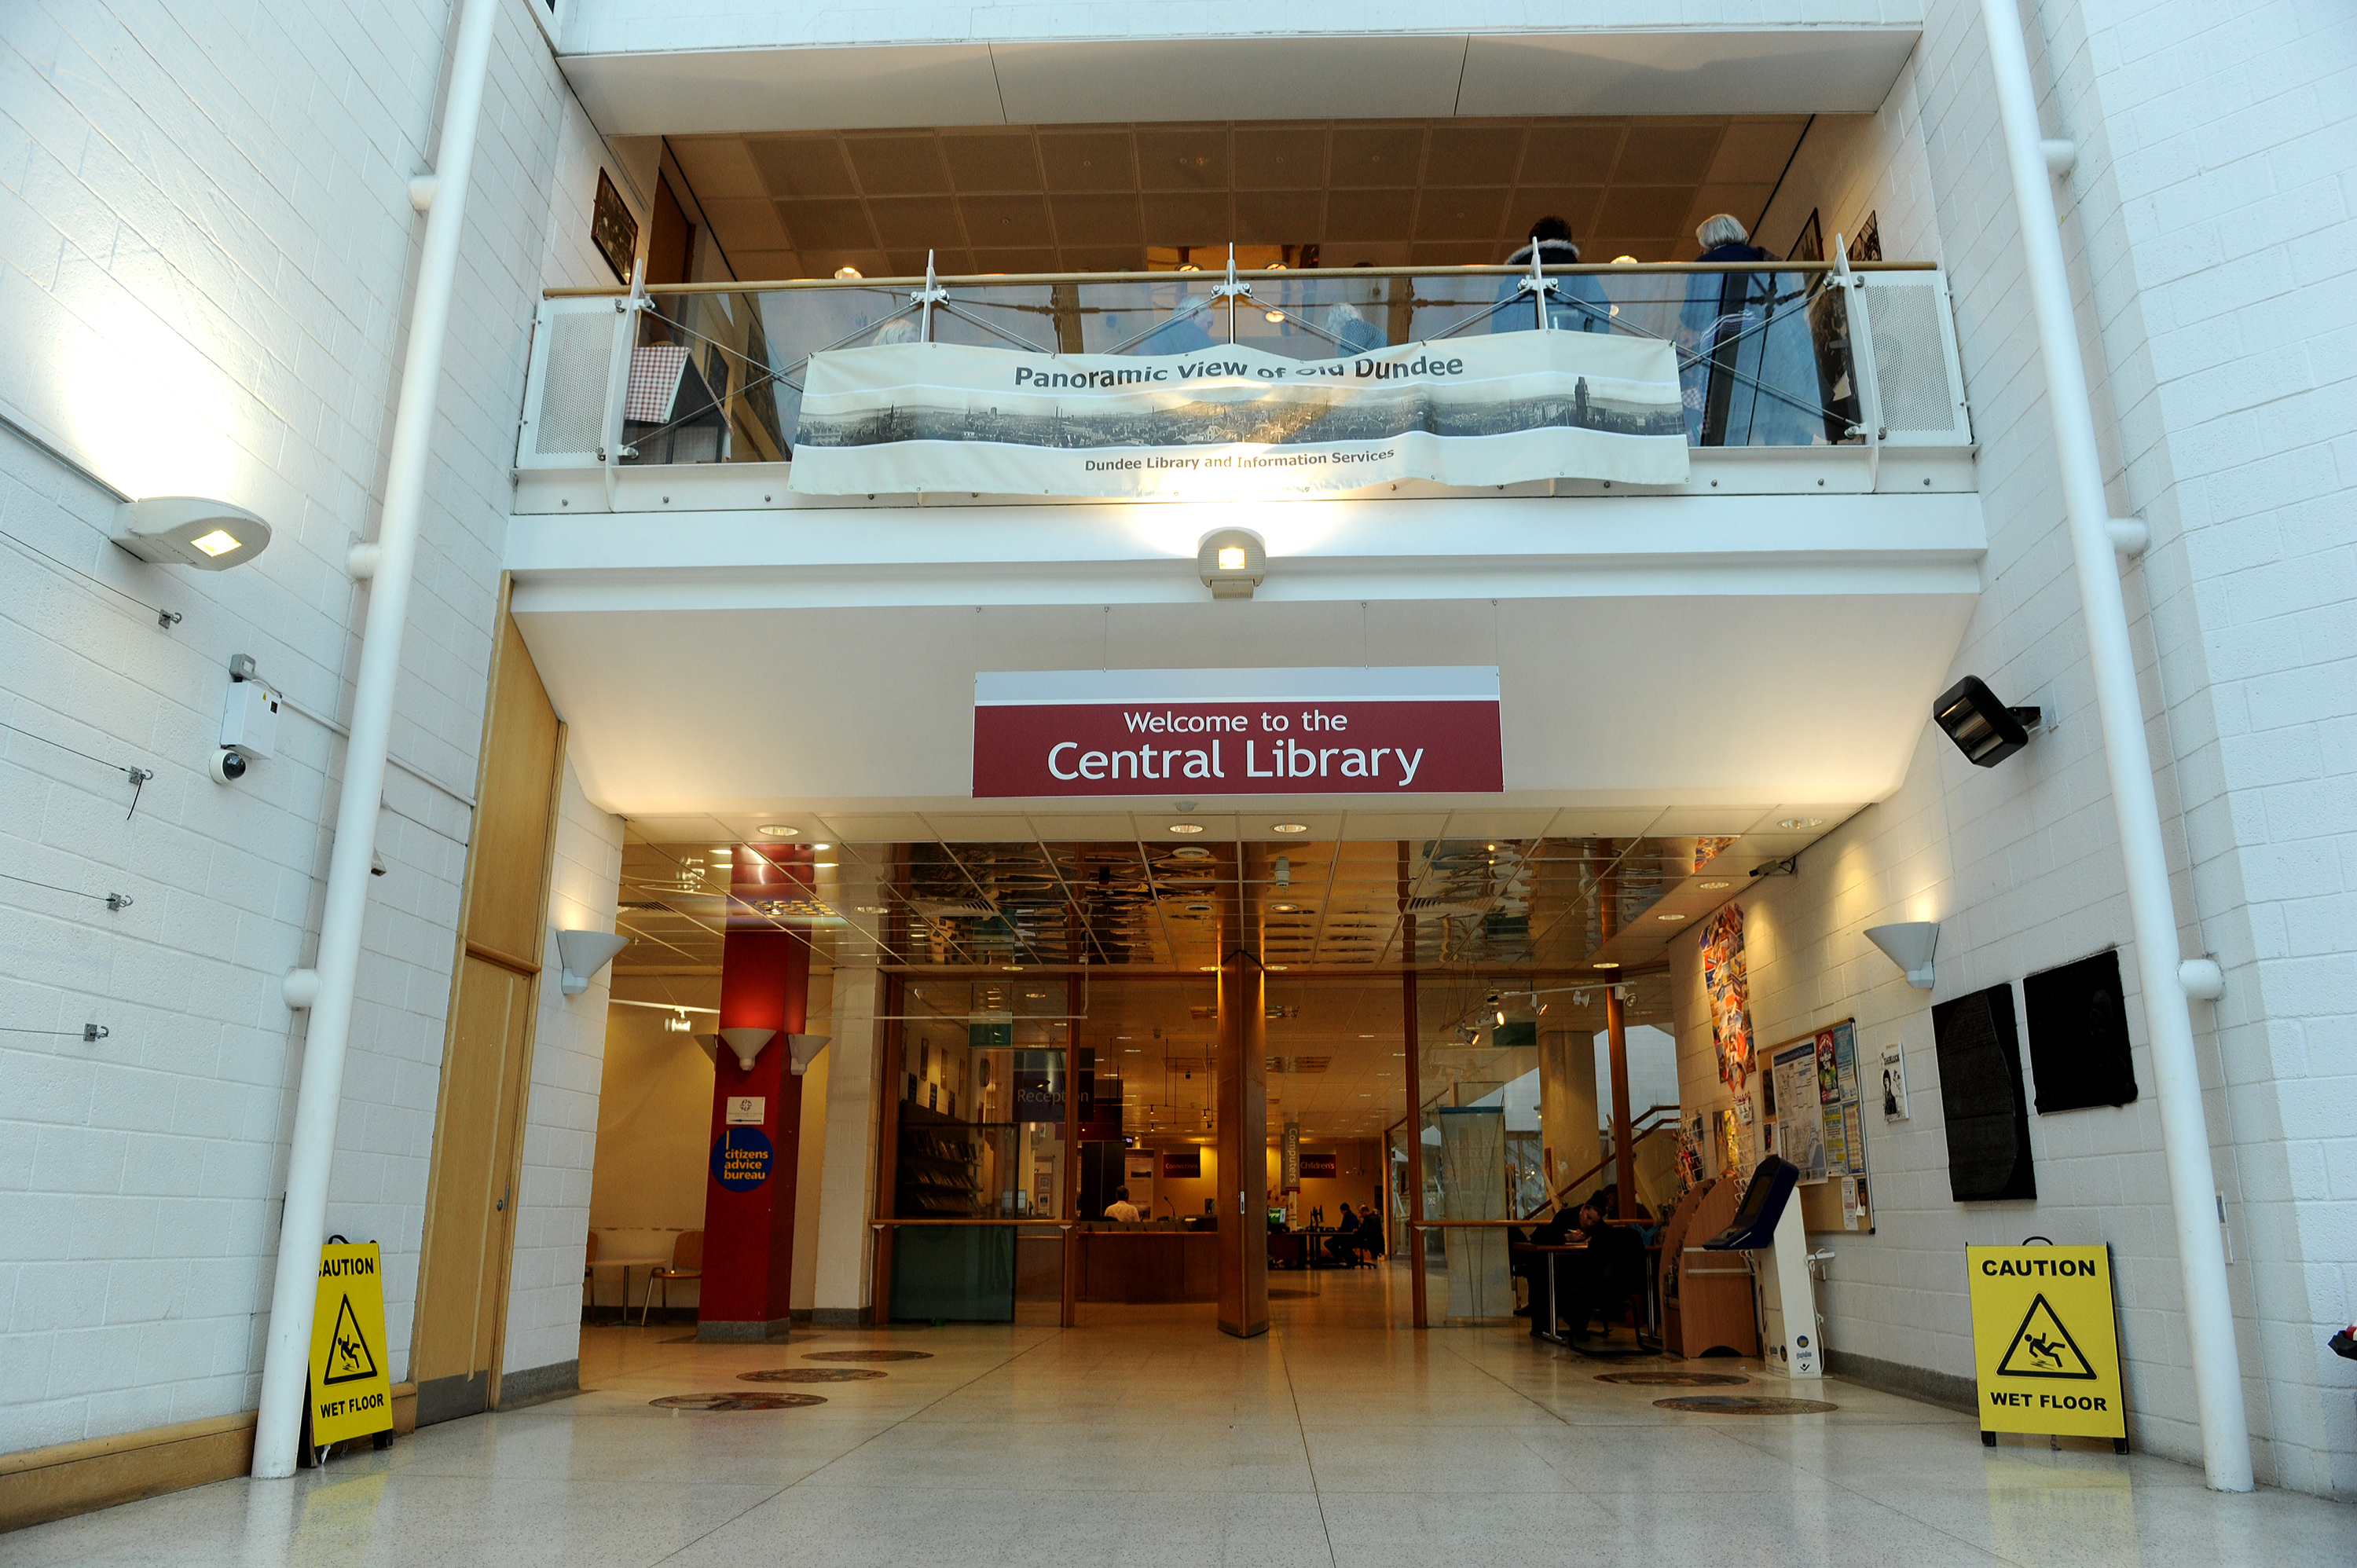 Dundee Central Library.